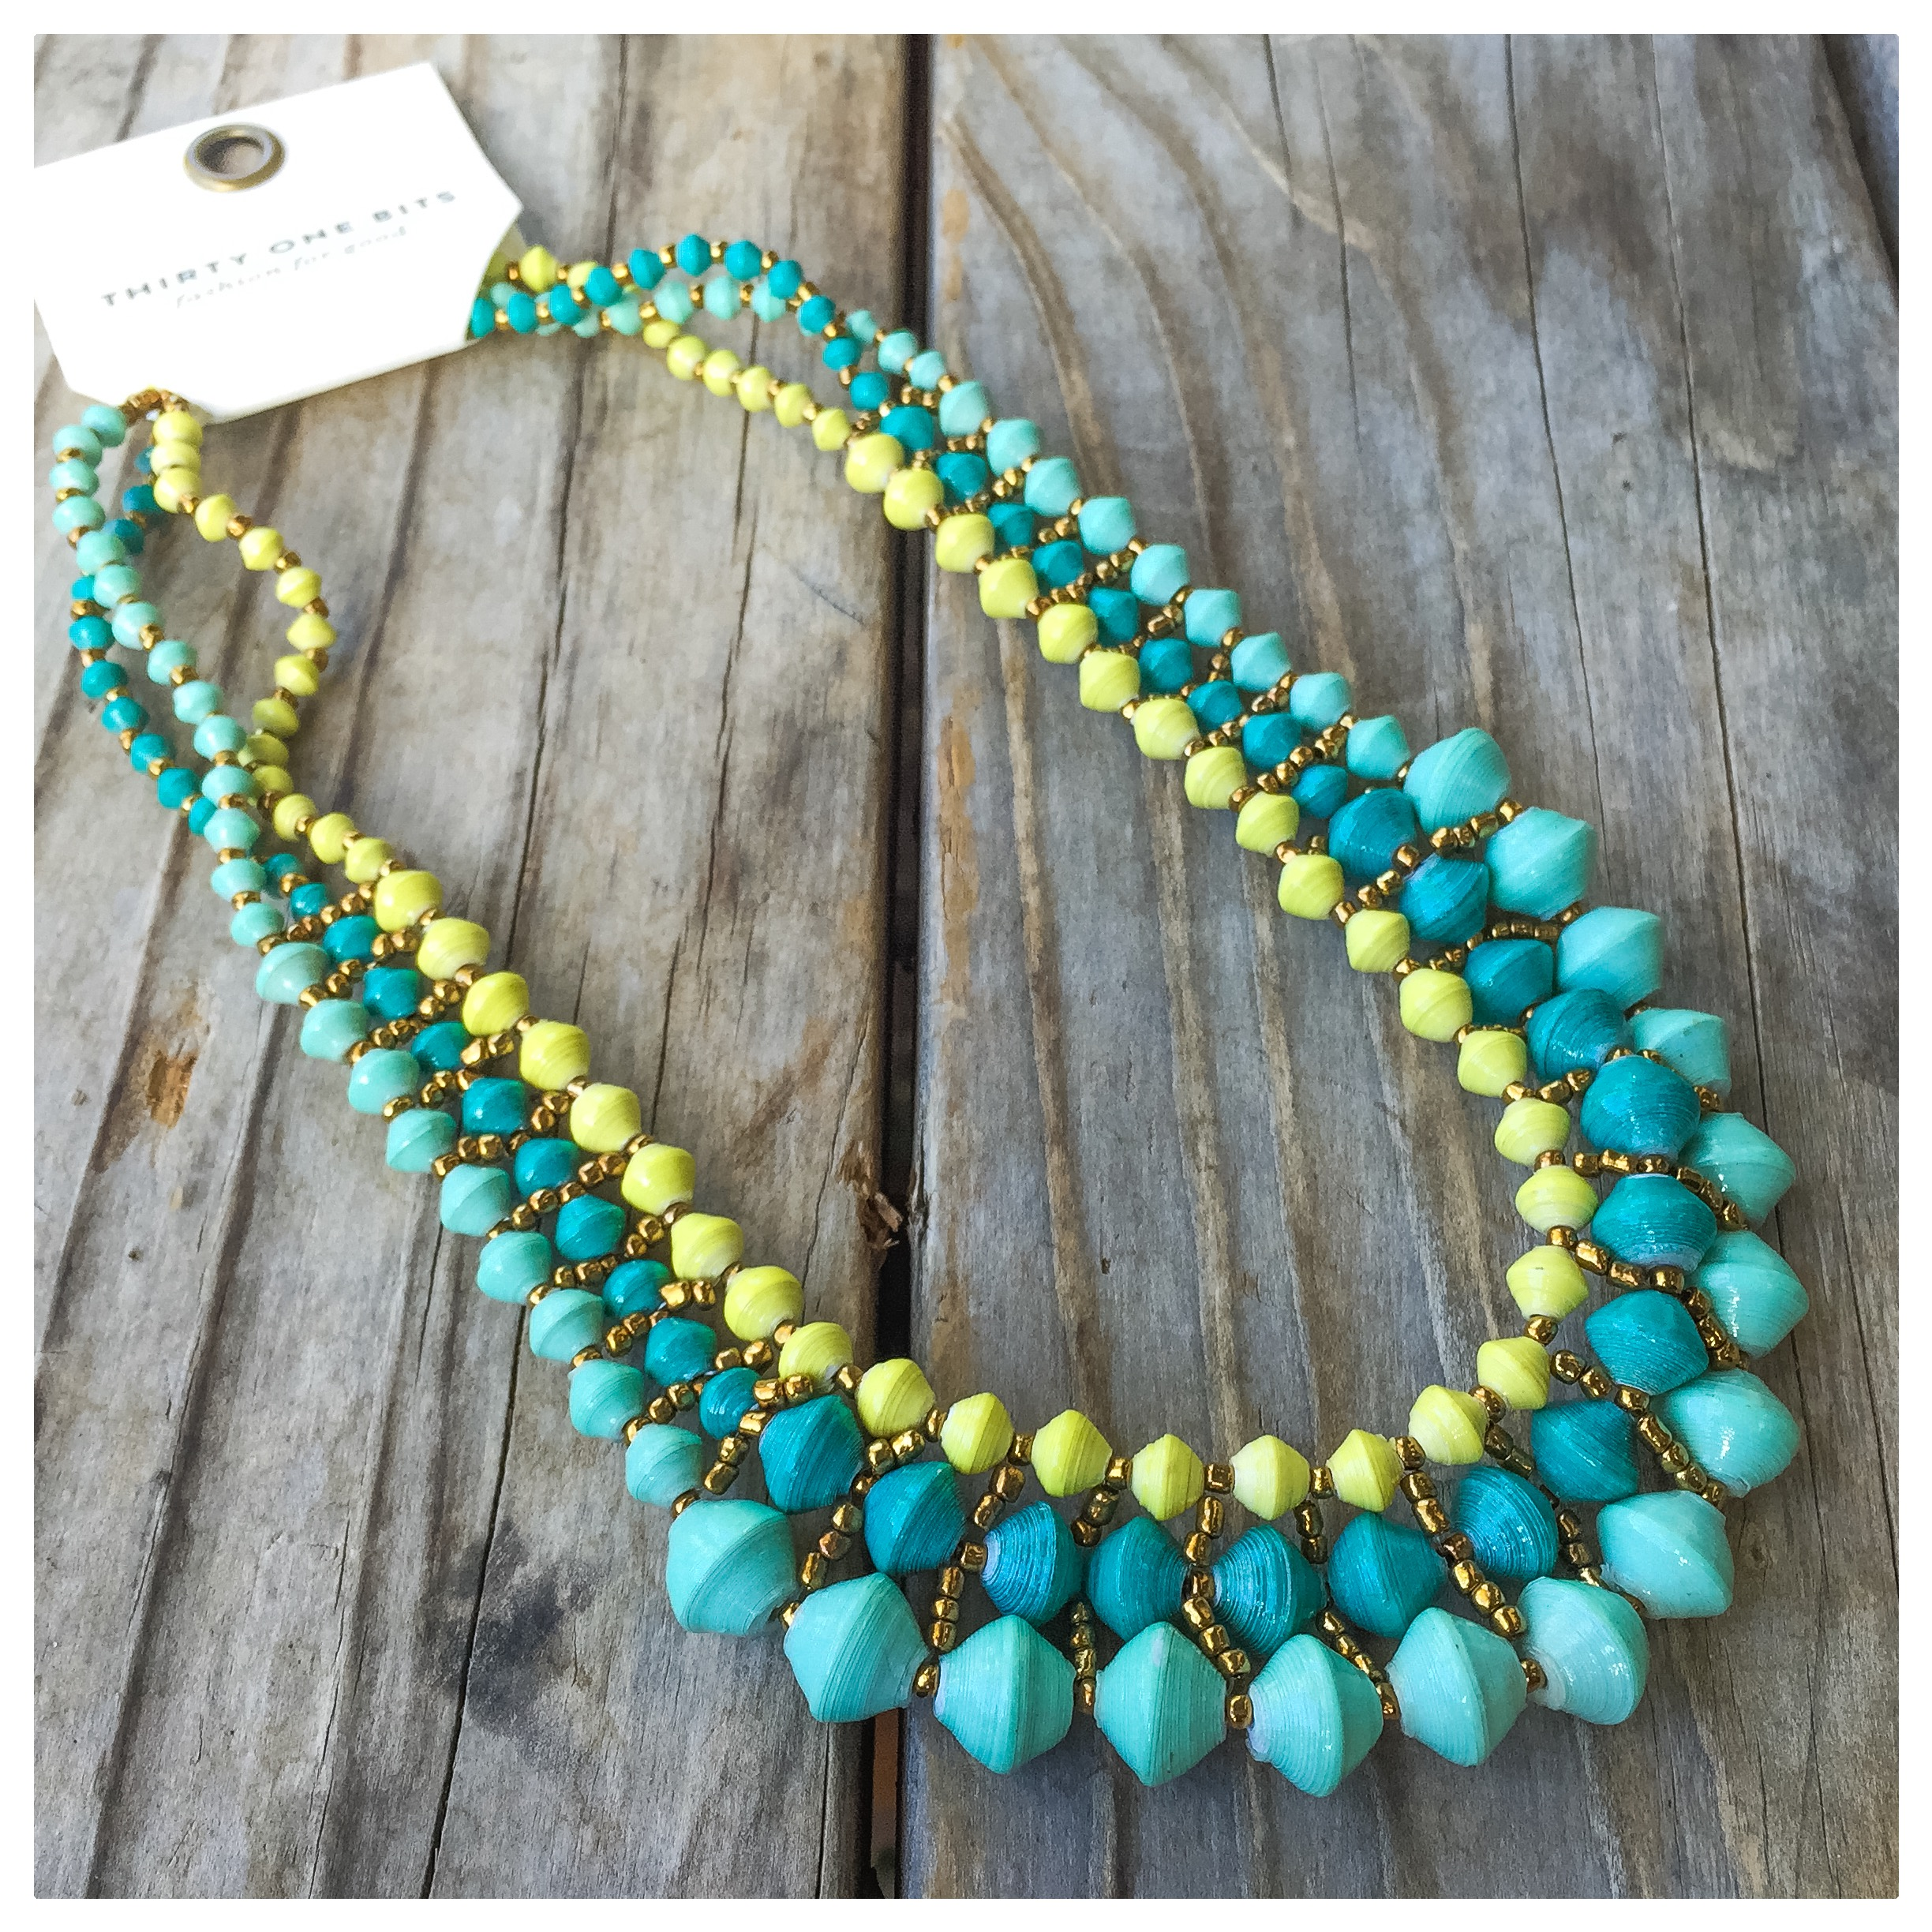 The Fiji Necklace from  31 Bits is just as beautiful as it is purposeful. Made in Uganda, this company seeks to improve the lives of women and their communities by making beautiful jewelry through a holistic development program.